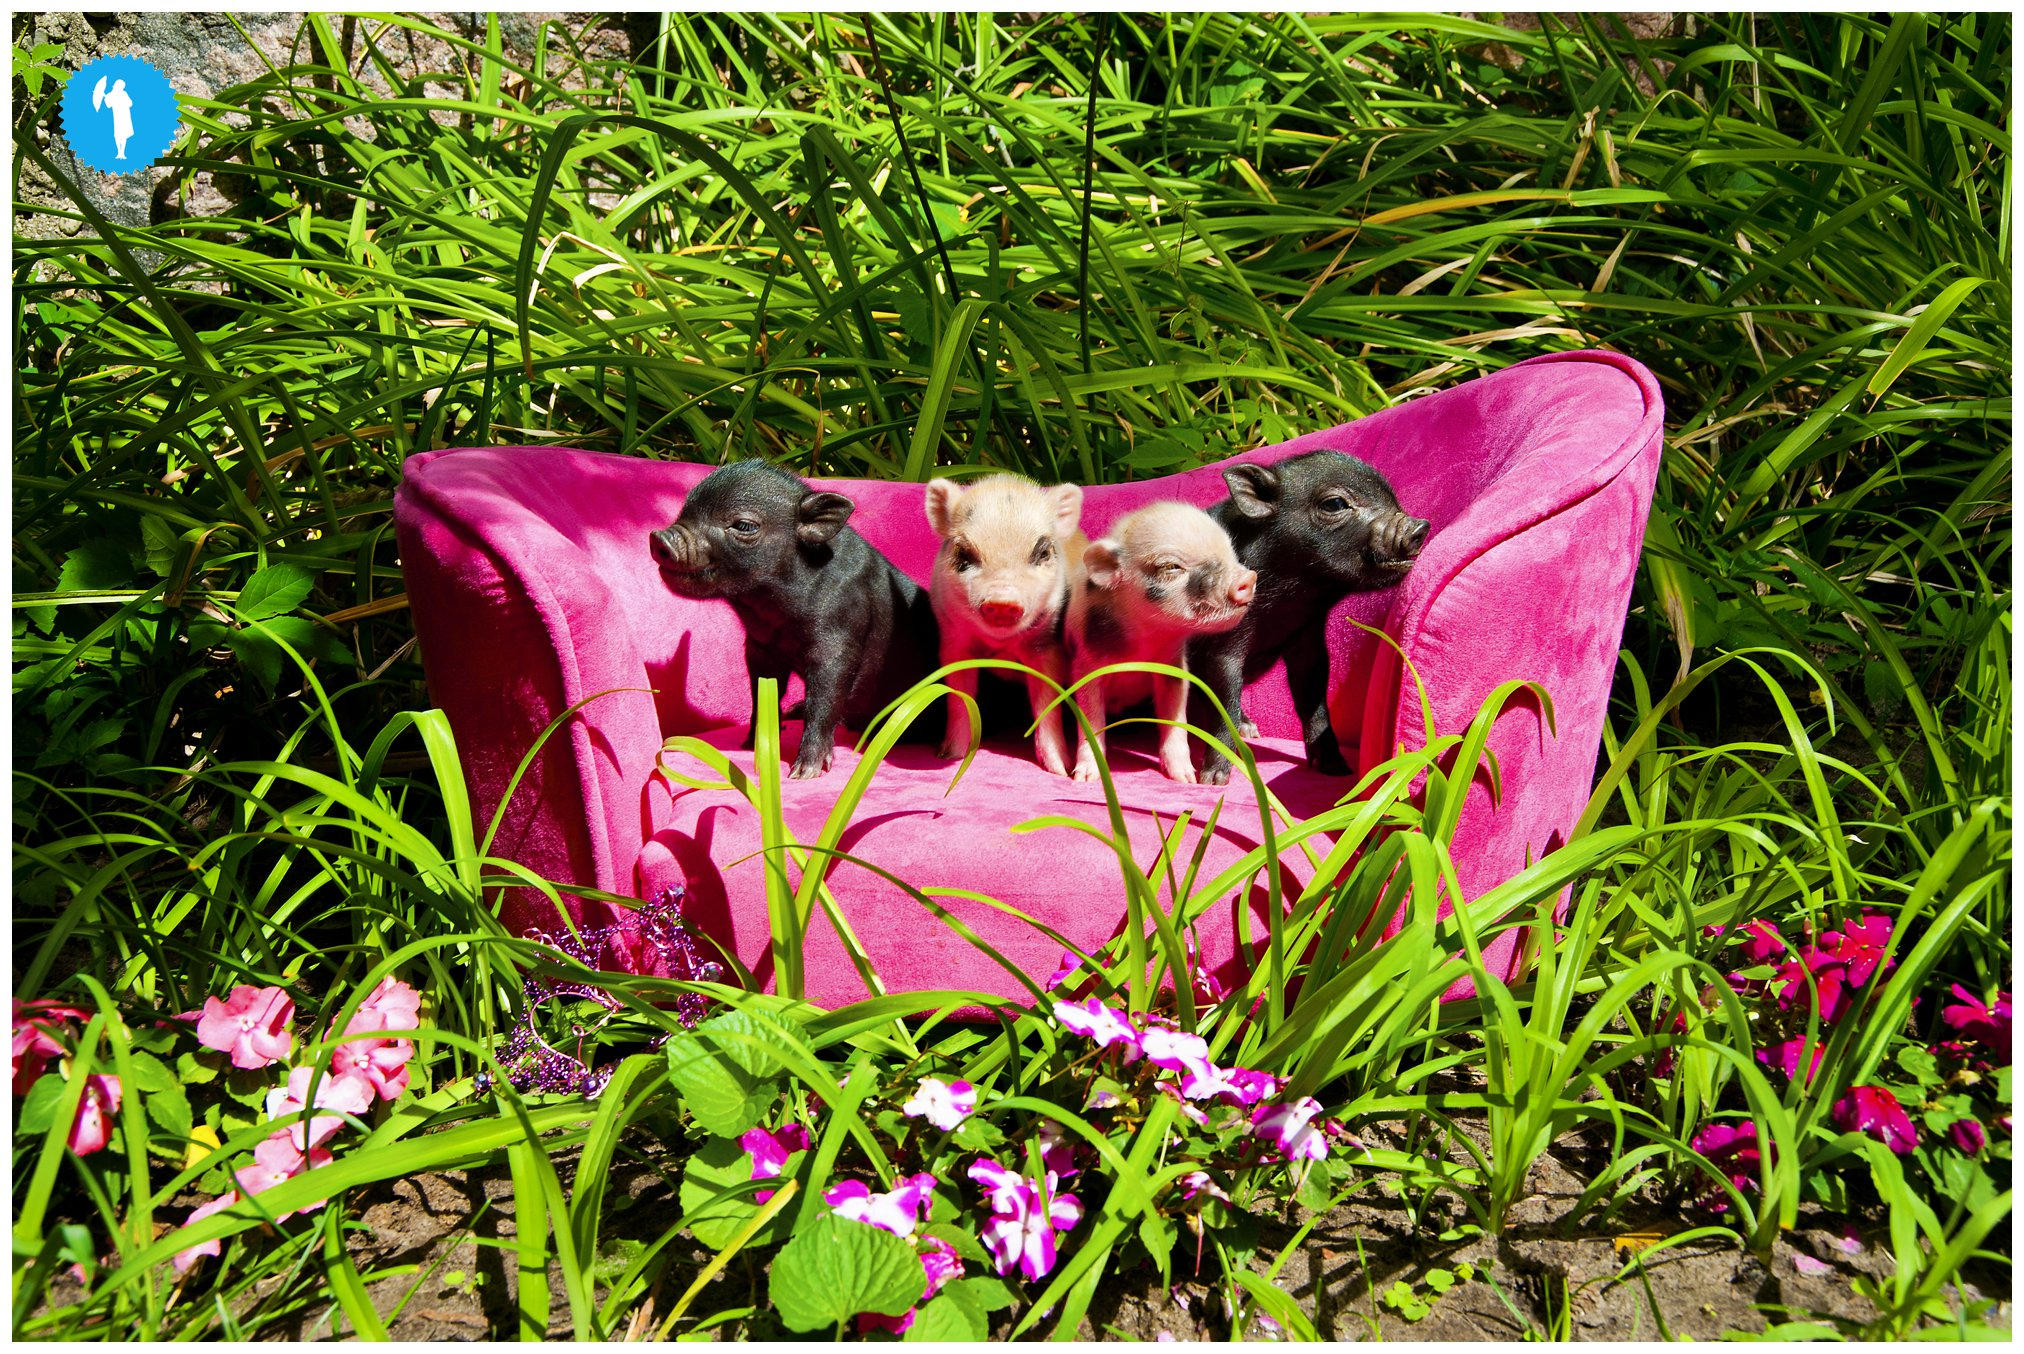 Baby piggies at Steckle Heritage Farm by Emily Beatty.